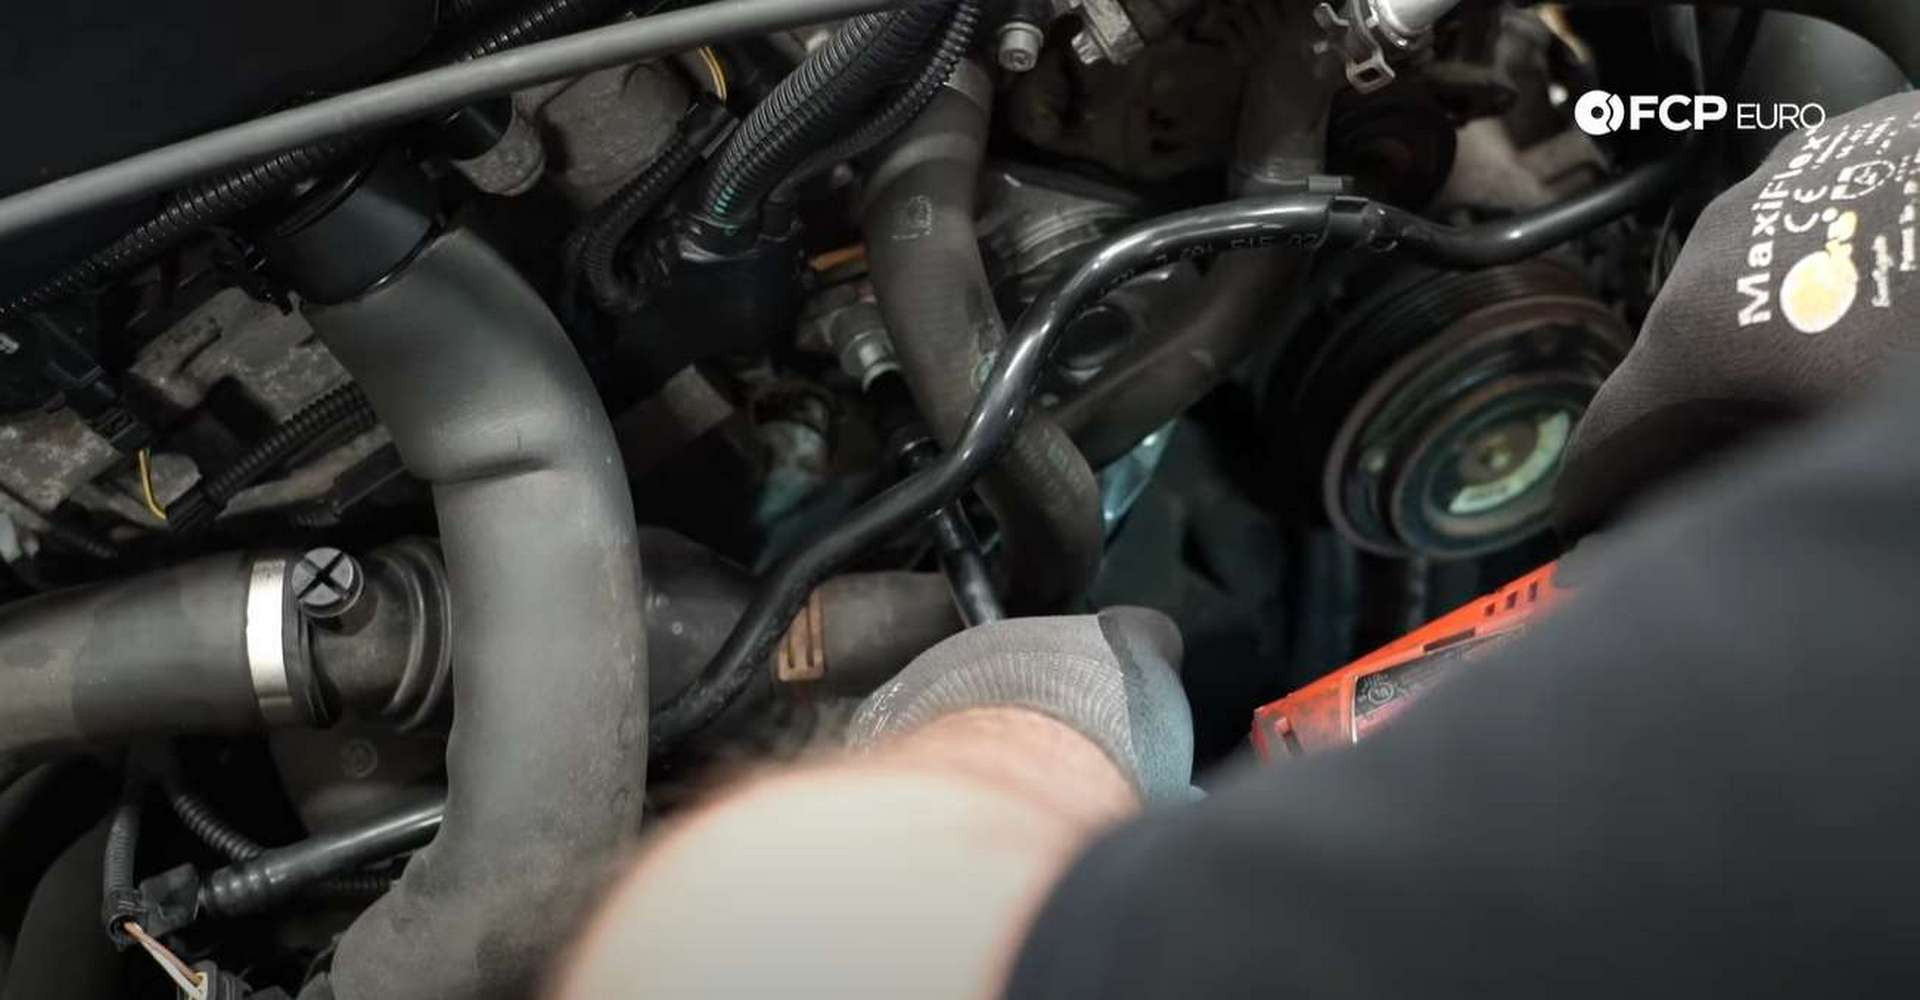 DIY BMW F30 Serpentine Belt Replacement installing the new tensioner